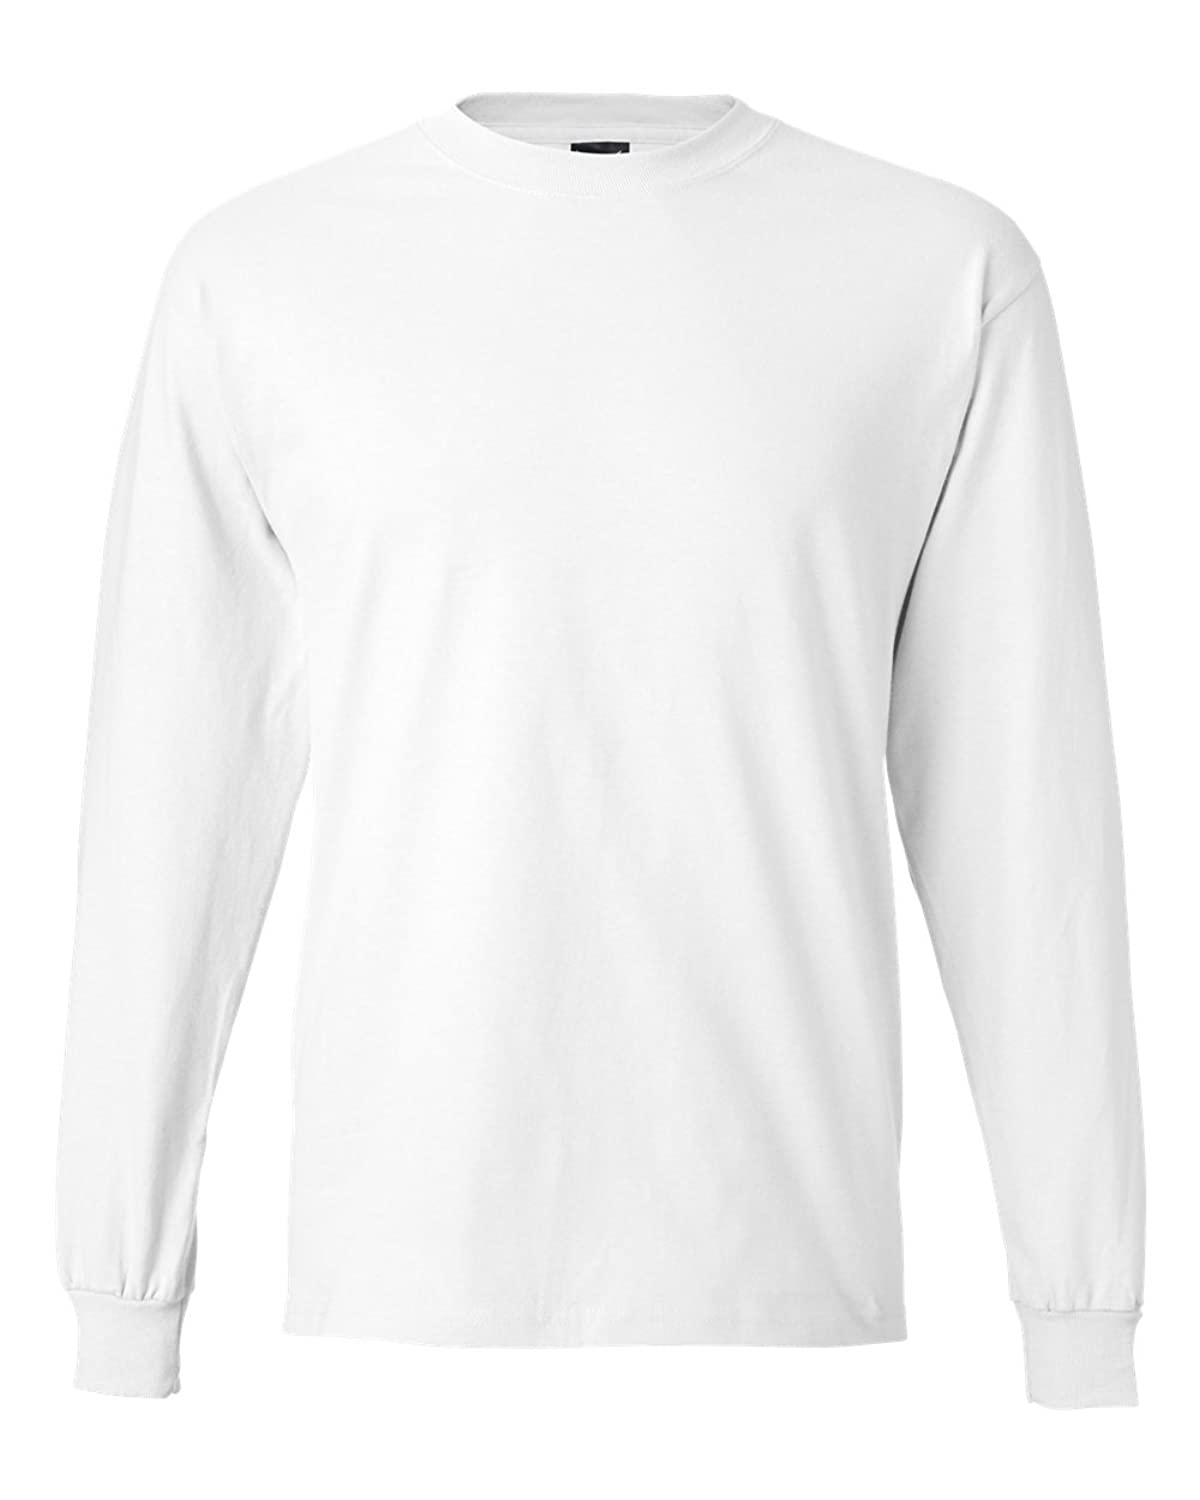 Tee shirt homme bien coupe